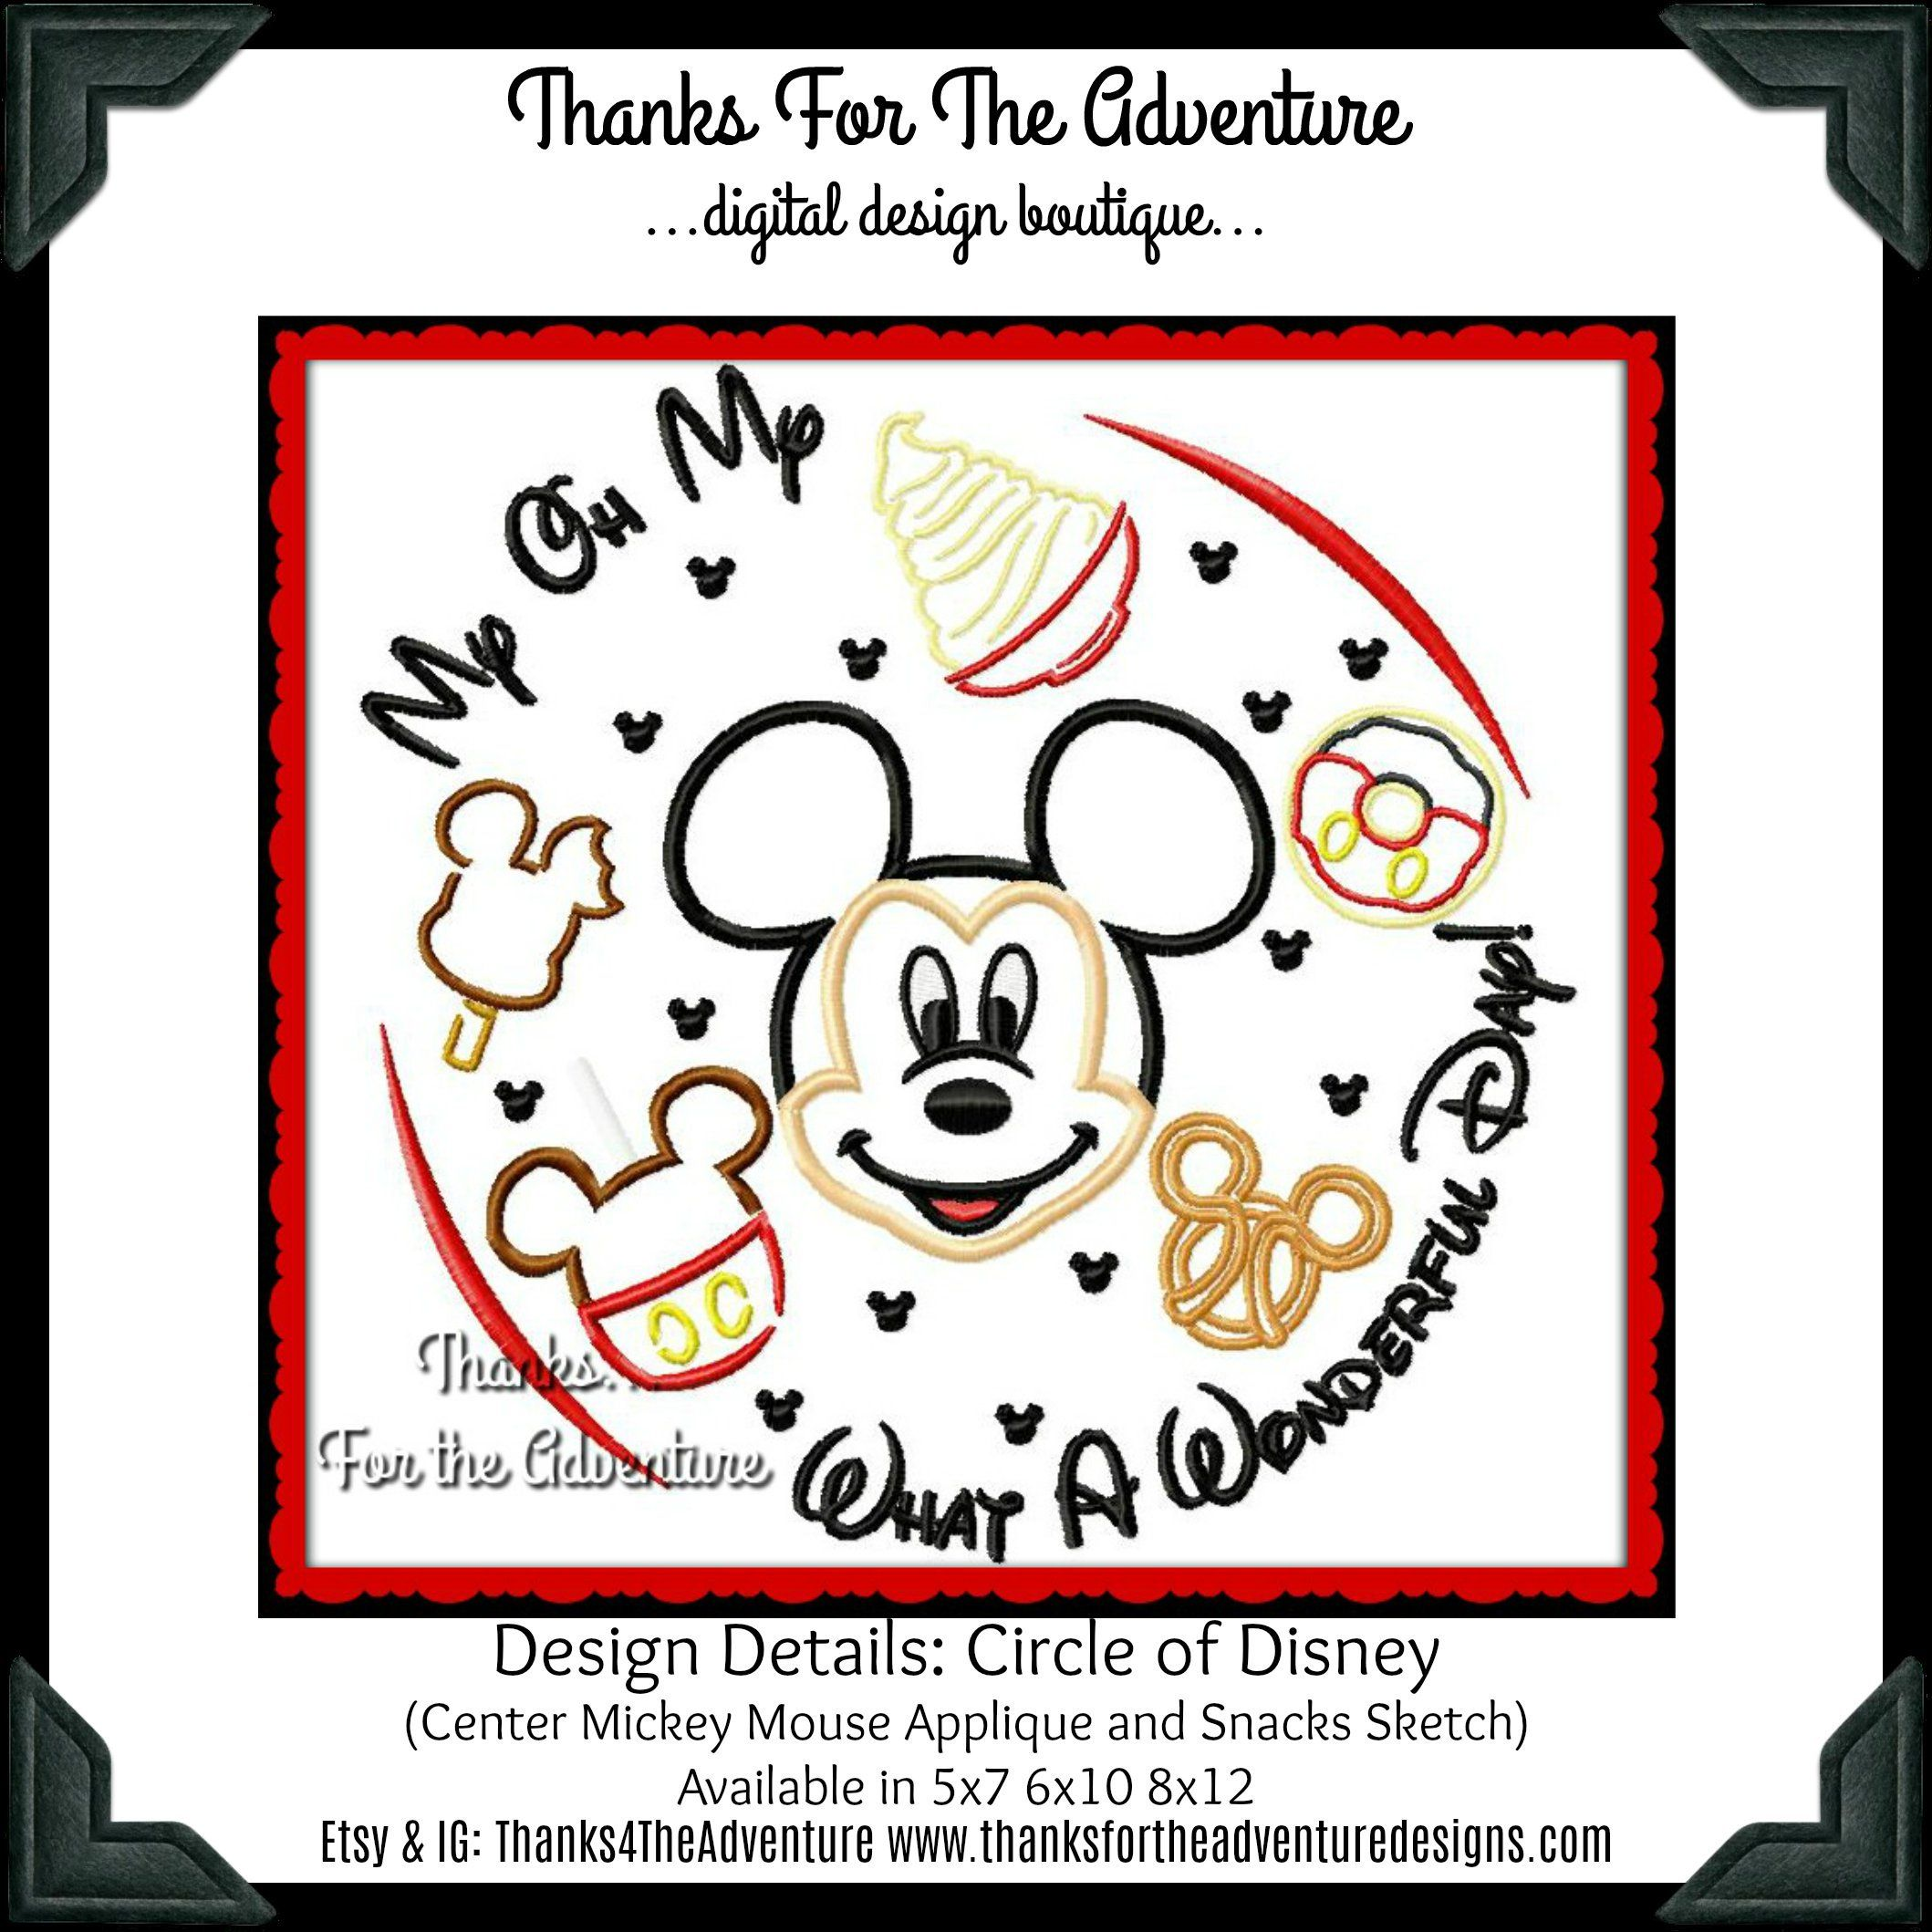 Mickey Mouse Disney World Disneyland Food Treats Snacks Circle of Disney Combo Digital Embroidery Machine Design File 5x7 6x10 8x12 #disneylandfood